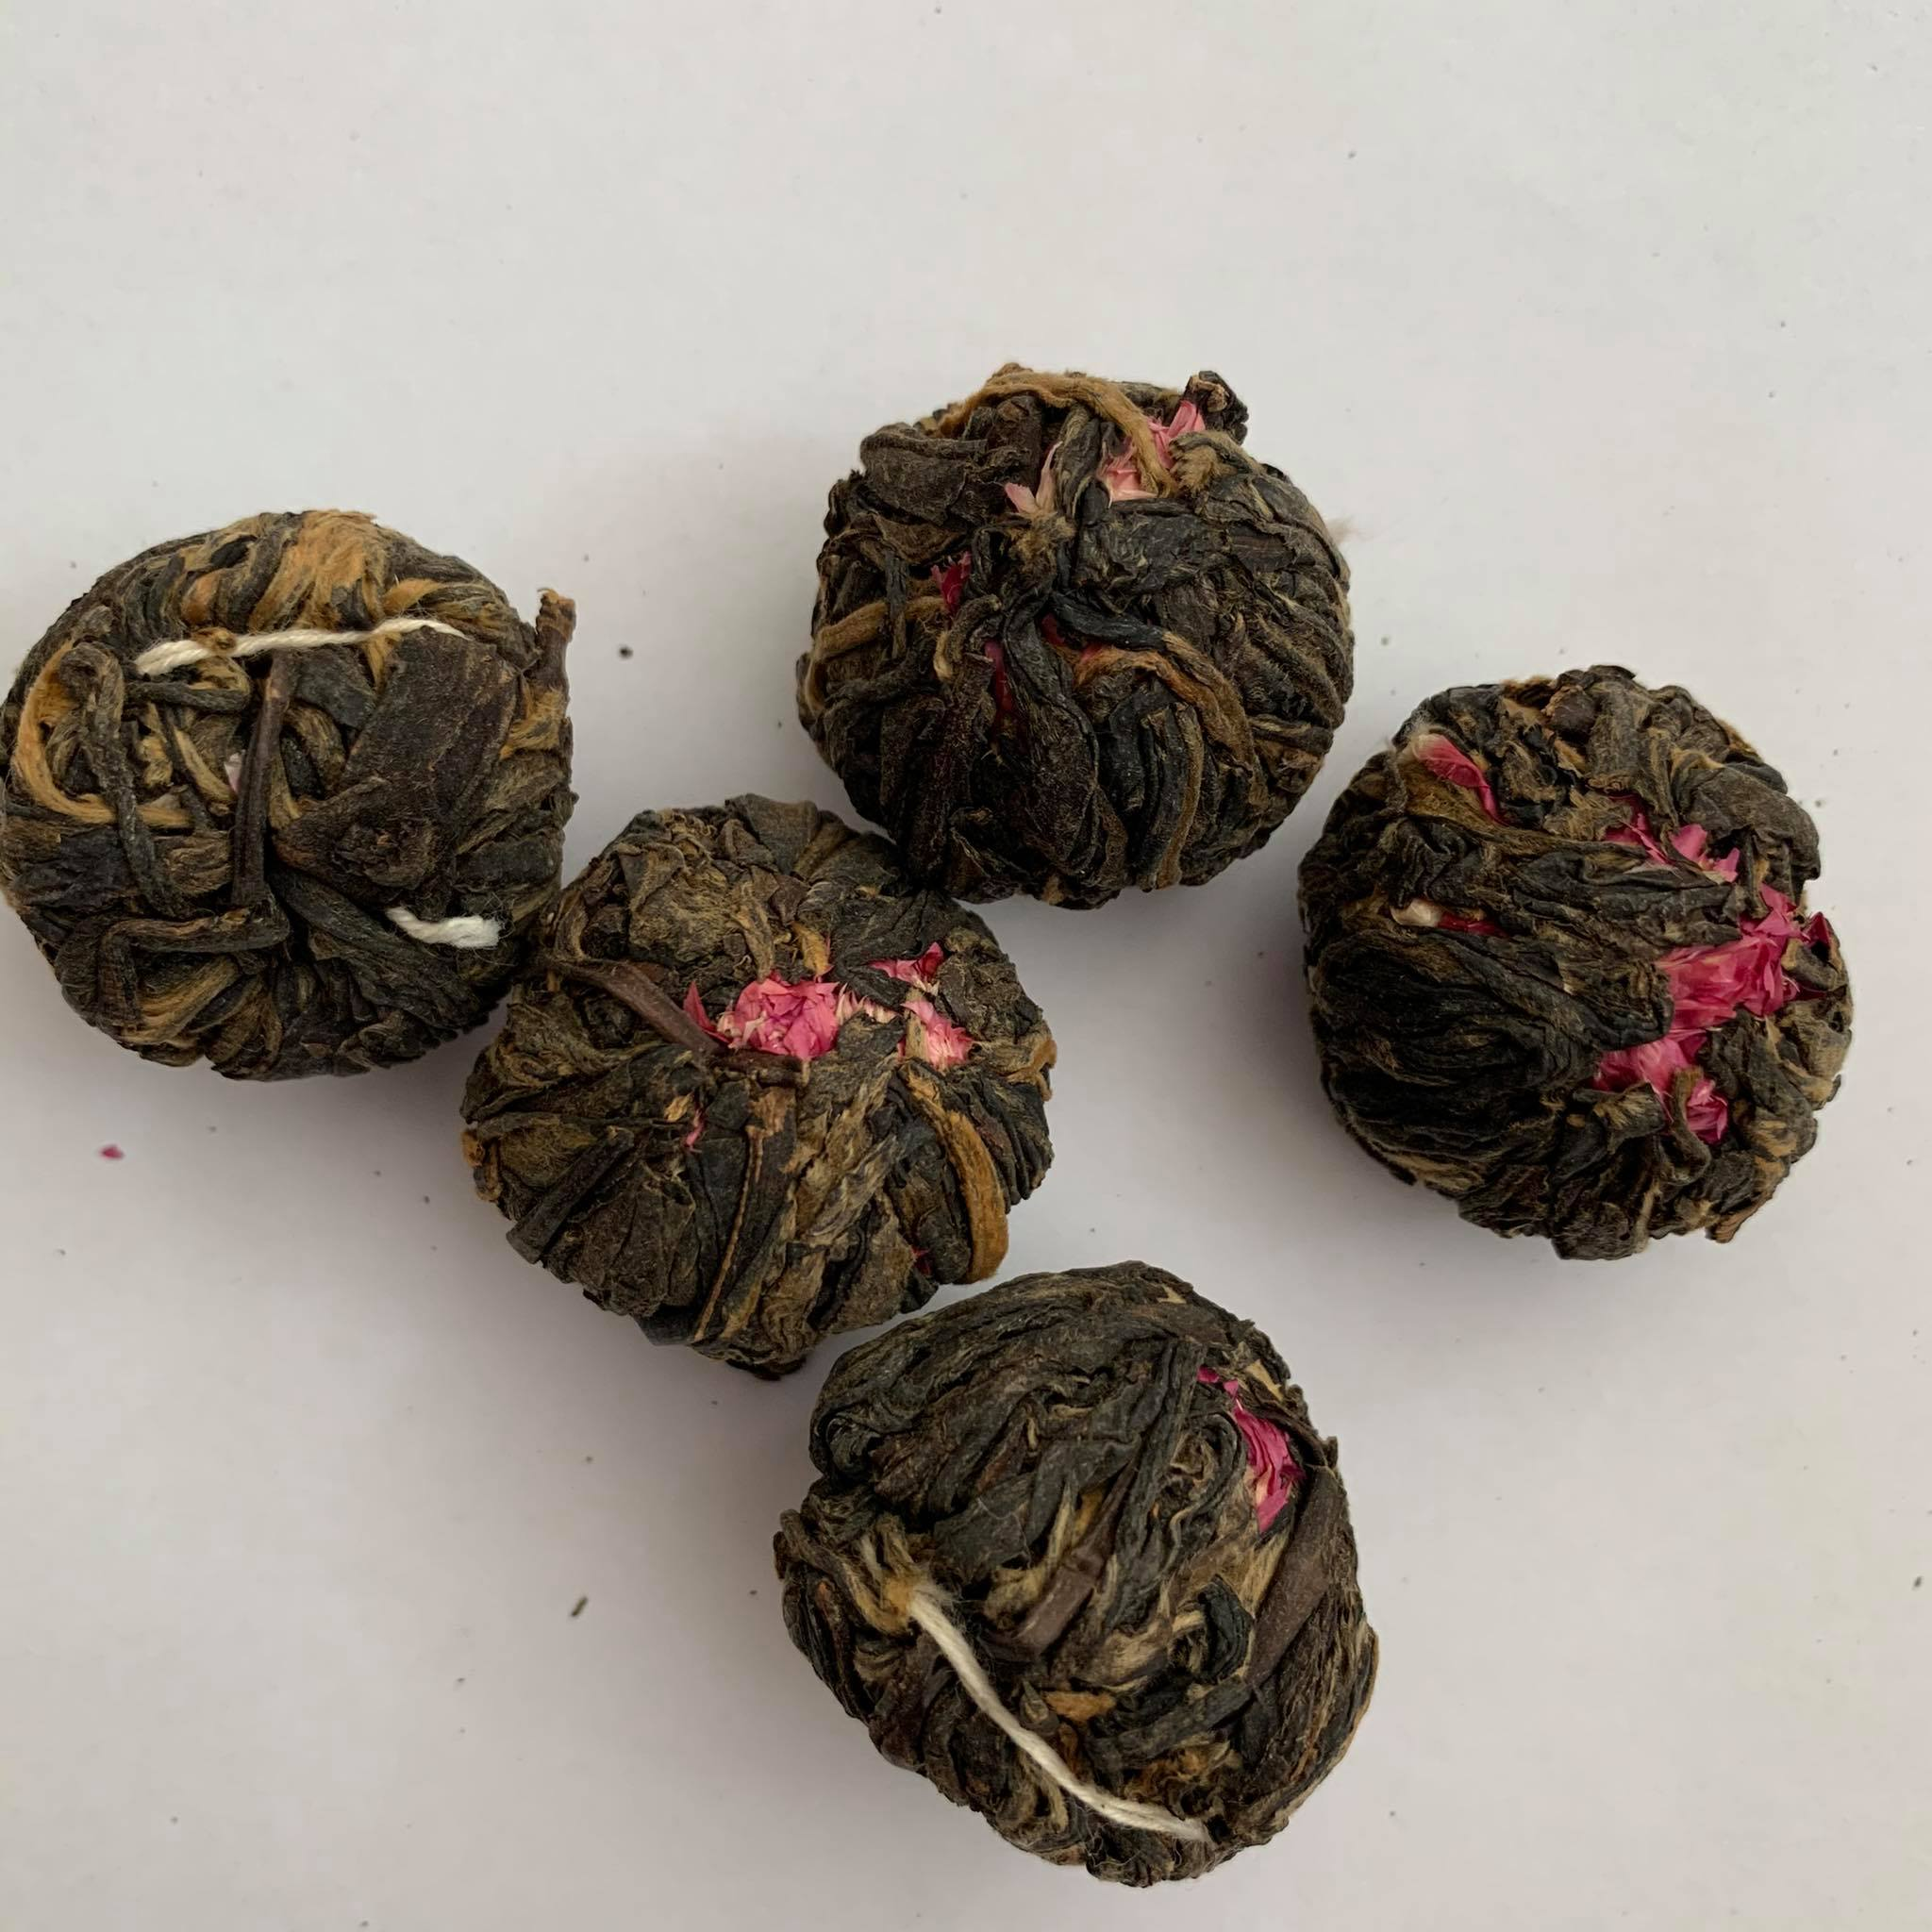 Gurman's Black Blossom Tea